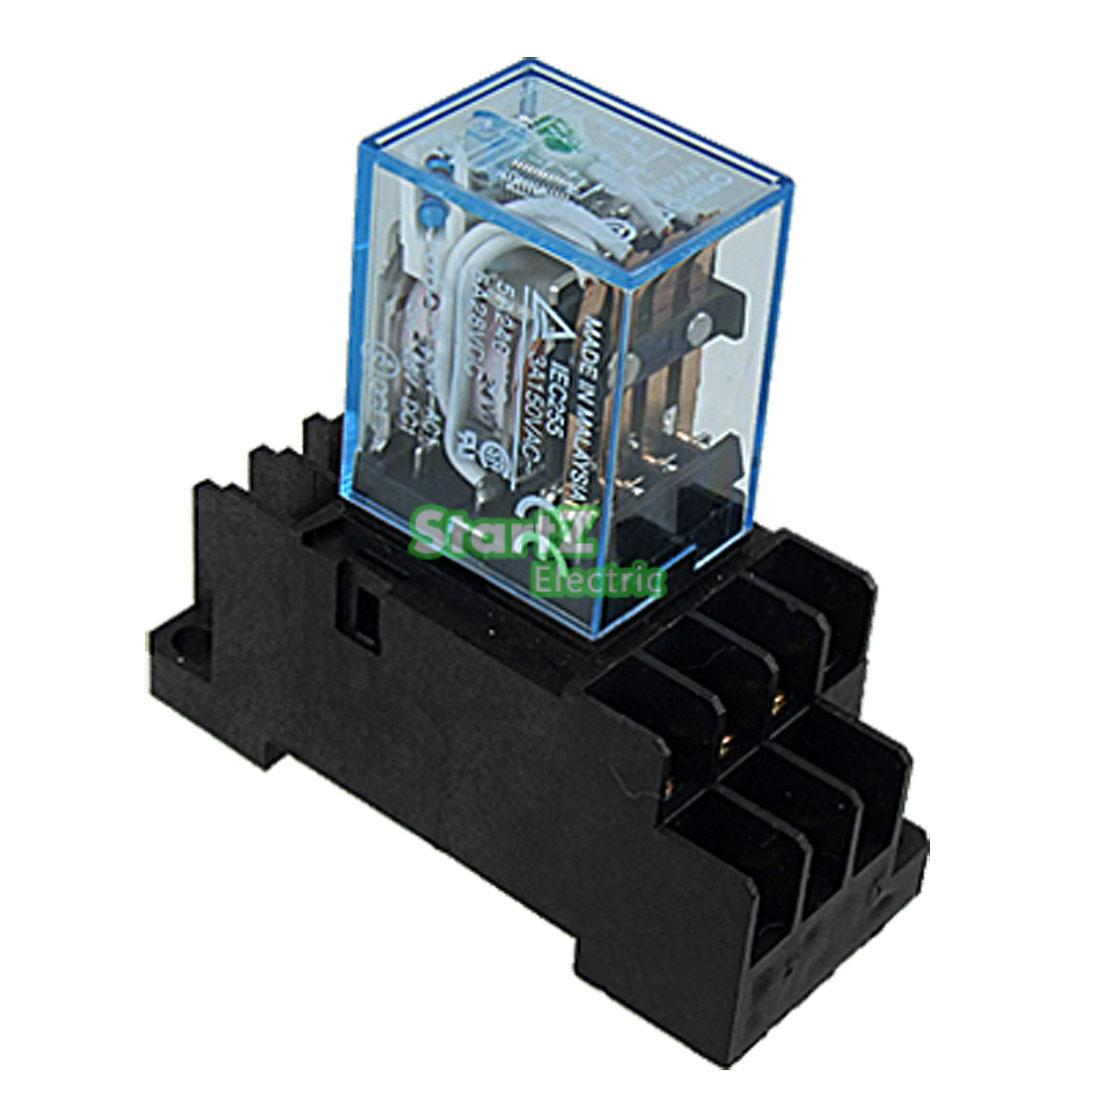 Pcs Relay Omron My Nj V Ac Small Relay A Pin Coil Dpdt With Socket Base on 8 Pin Dpdt Relay